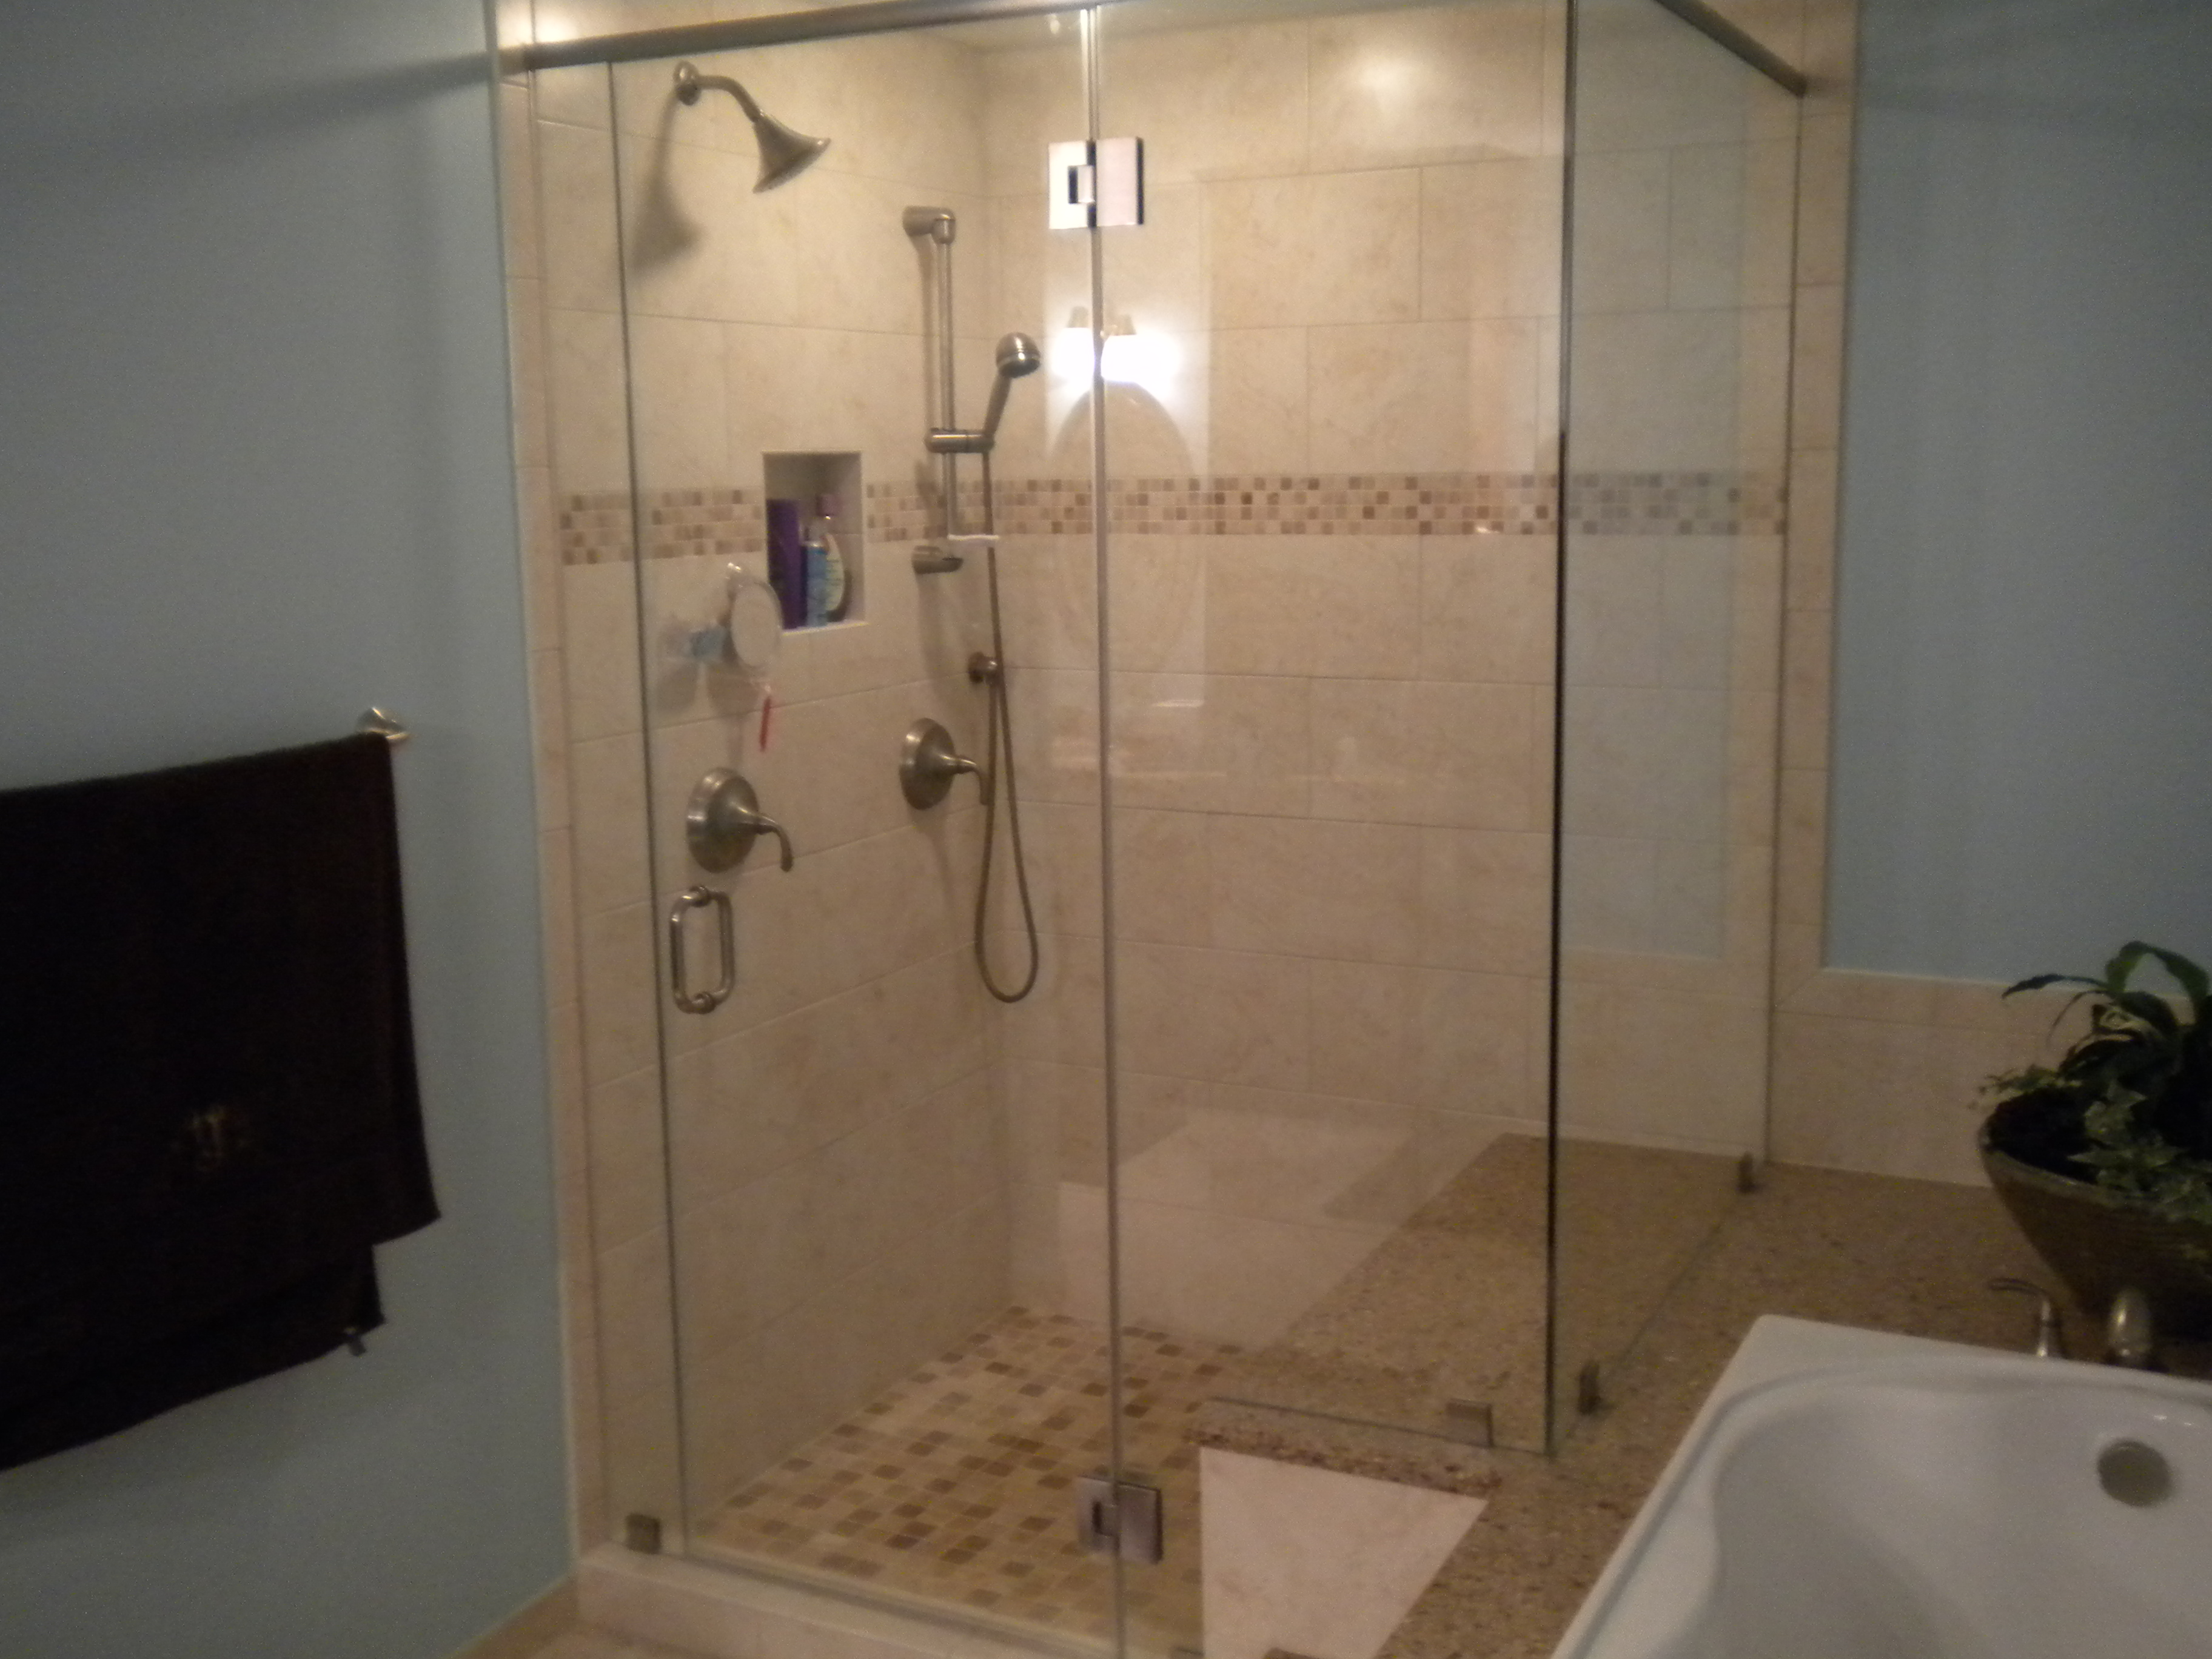 Galenski plumbing remodeling plumbers manassas va for Plumbers bathroom renovations